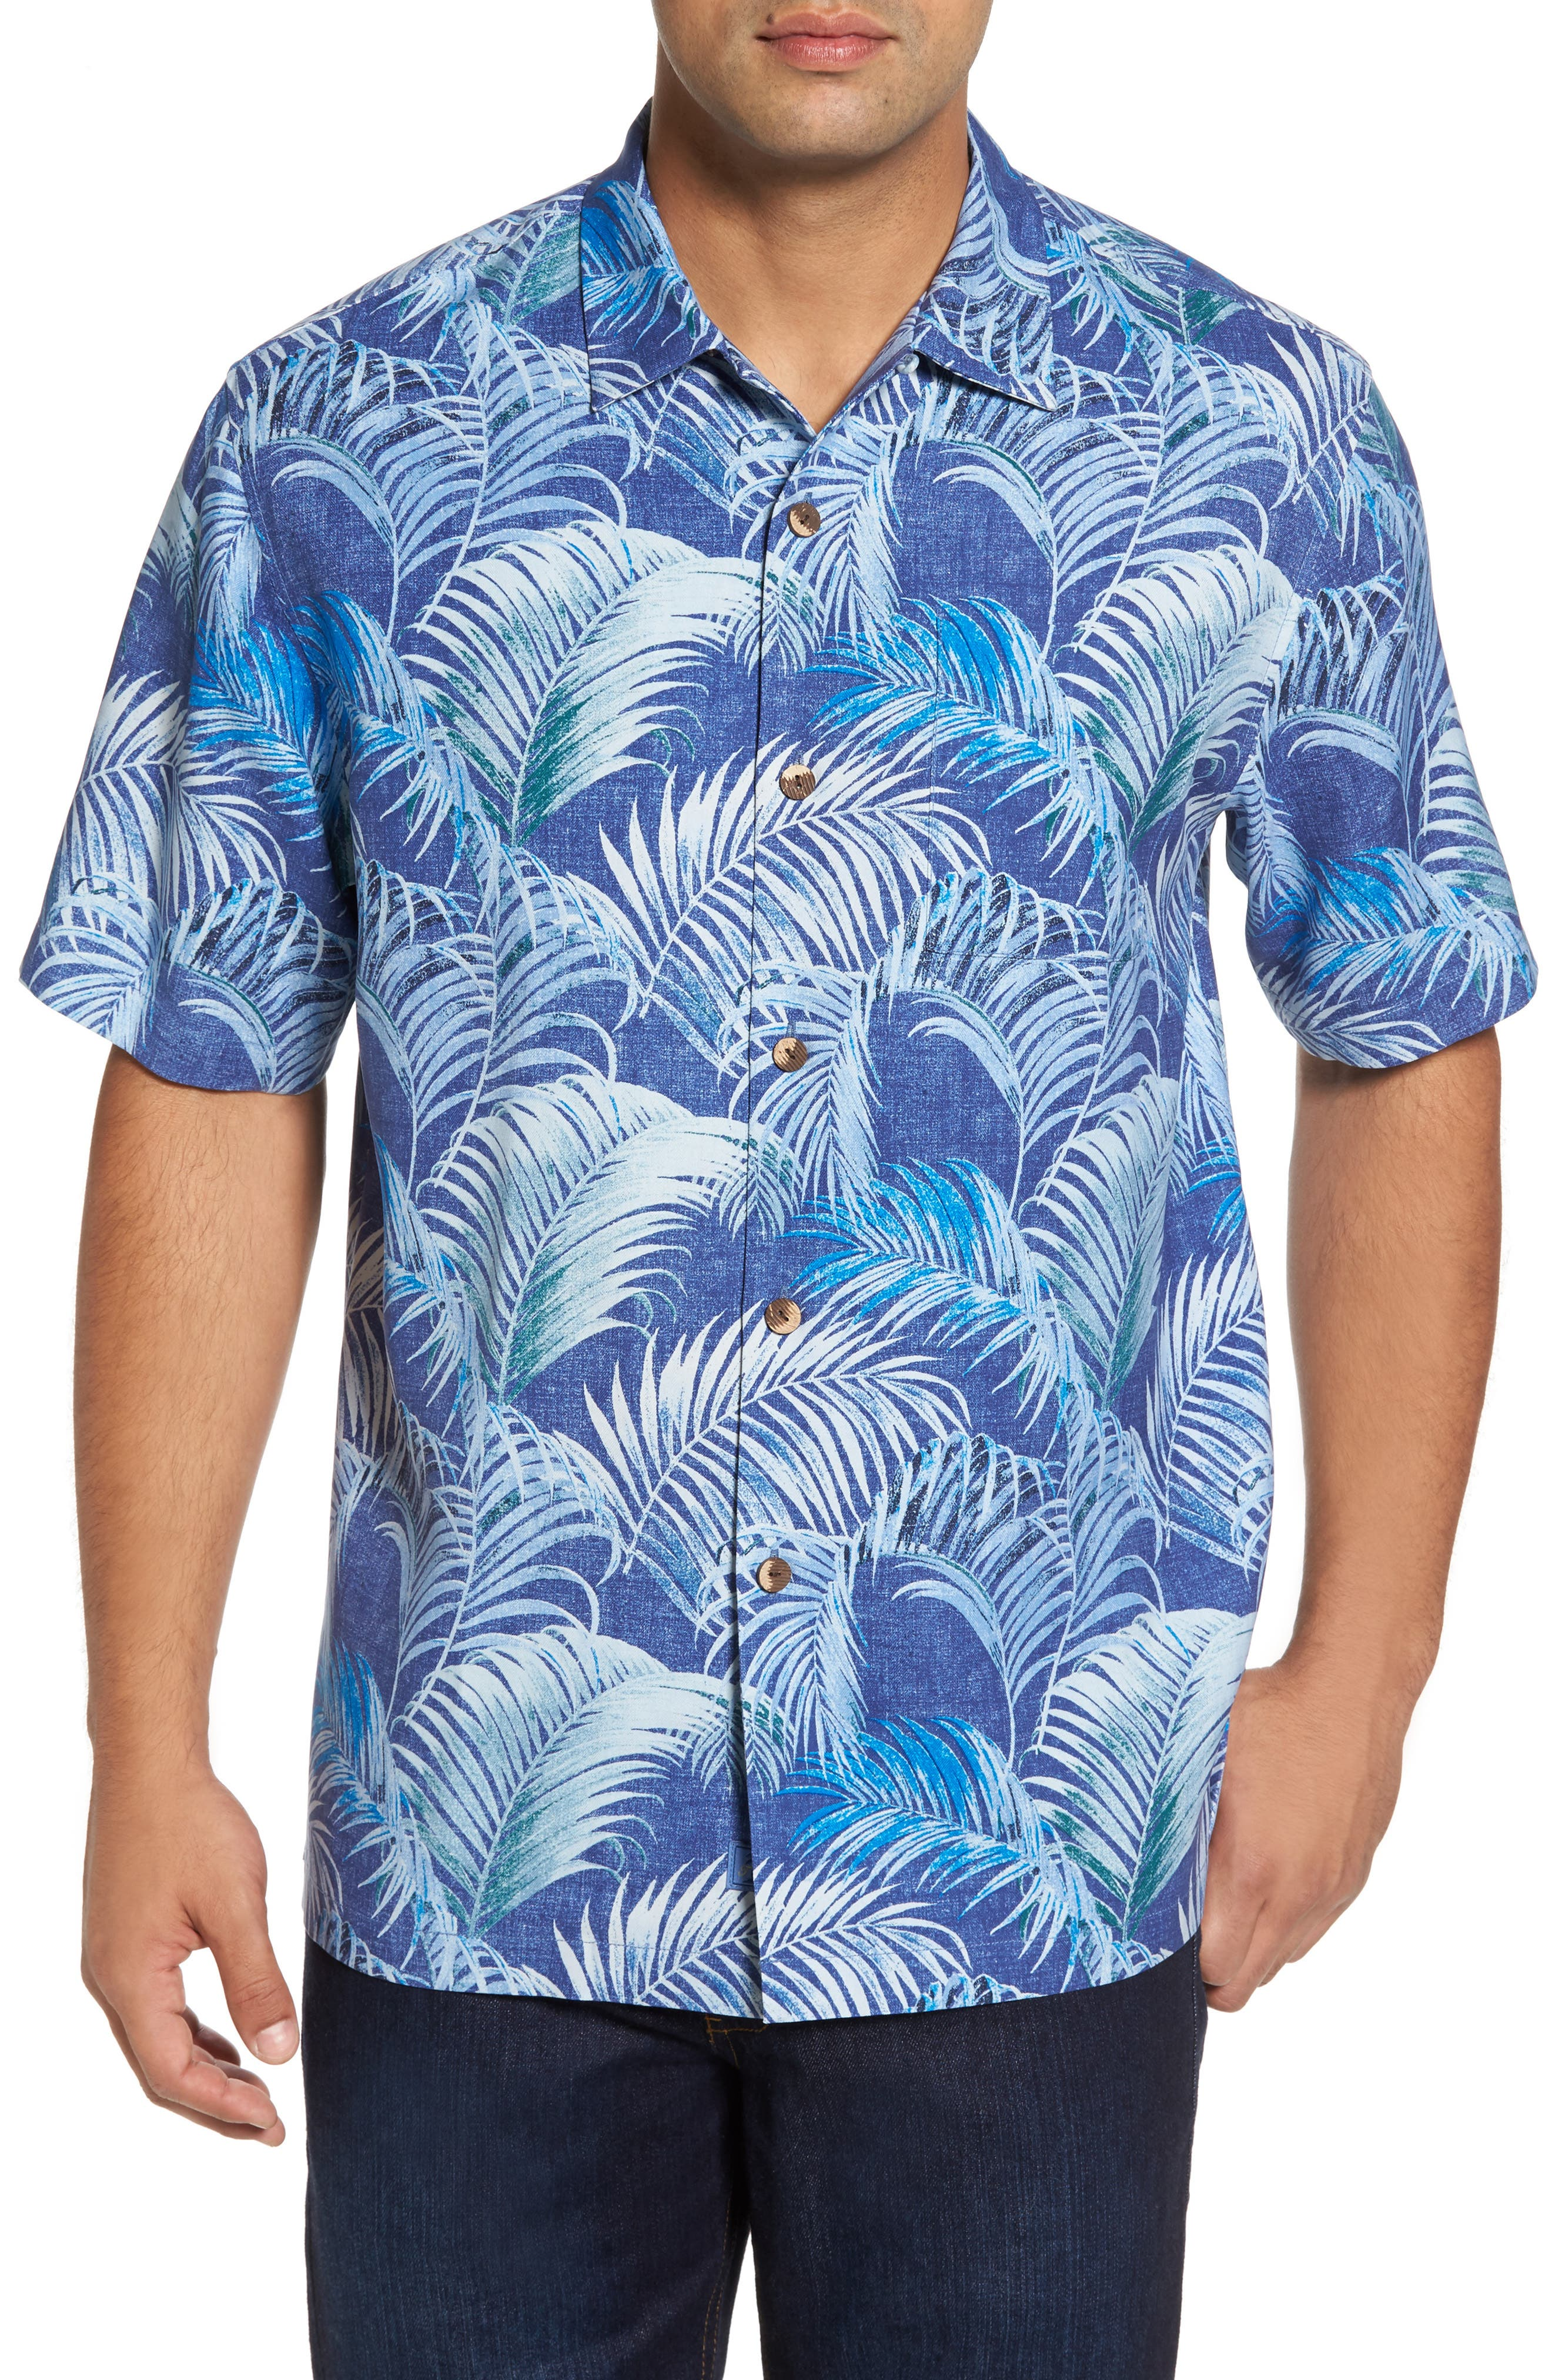 Garden of Hope and Courage Silk Camp Shirt,                             Main thumbnail 1, color,                             Eclipse